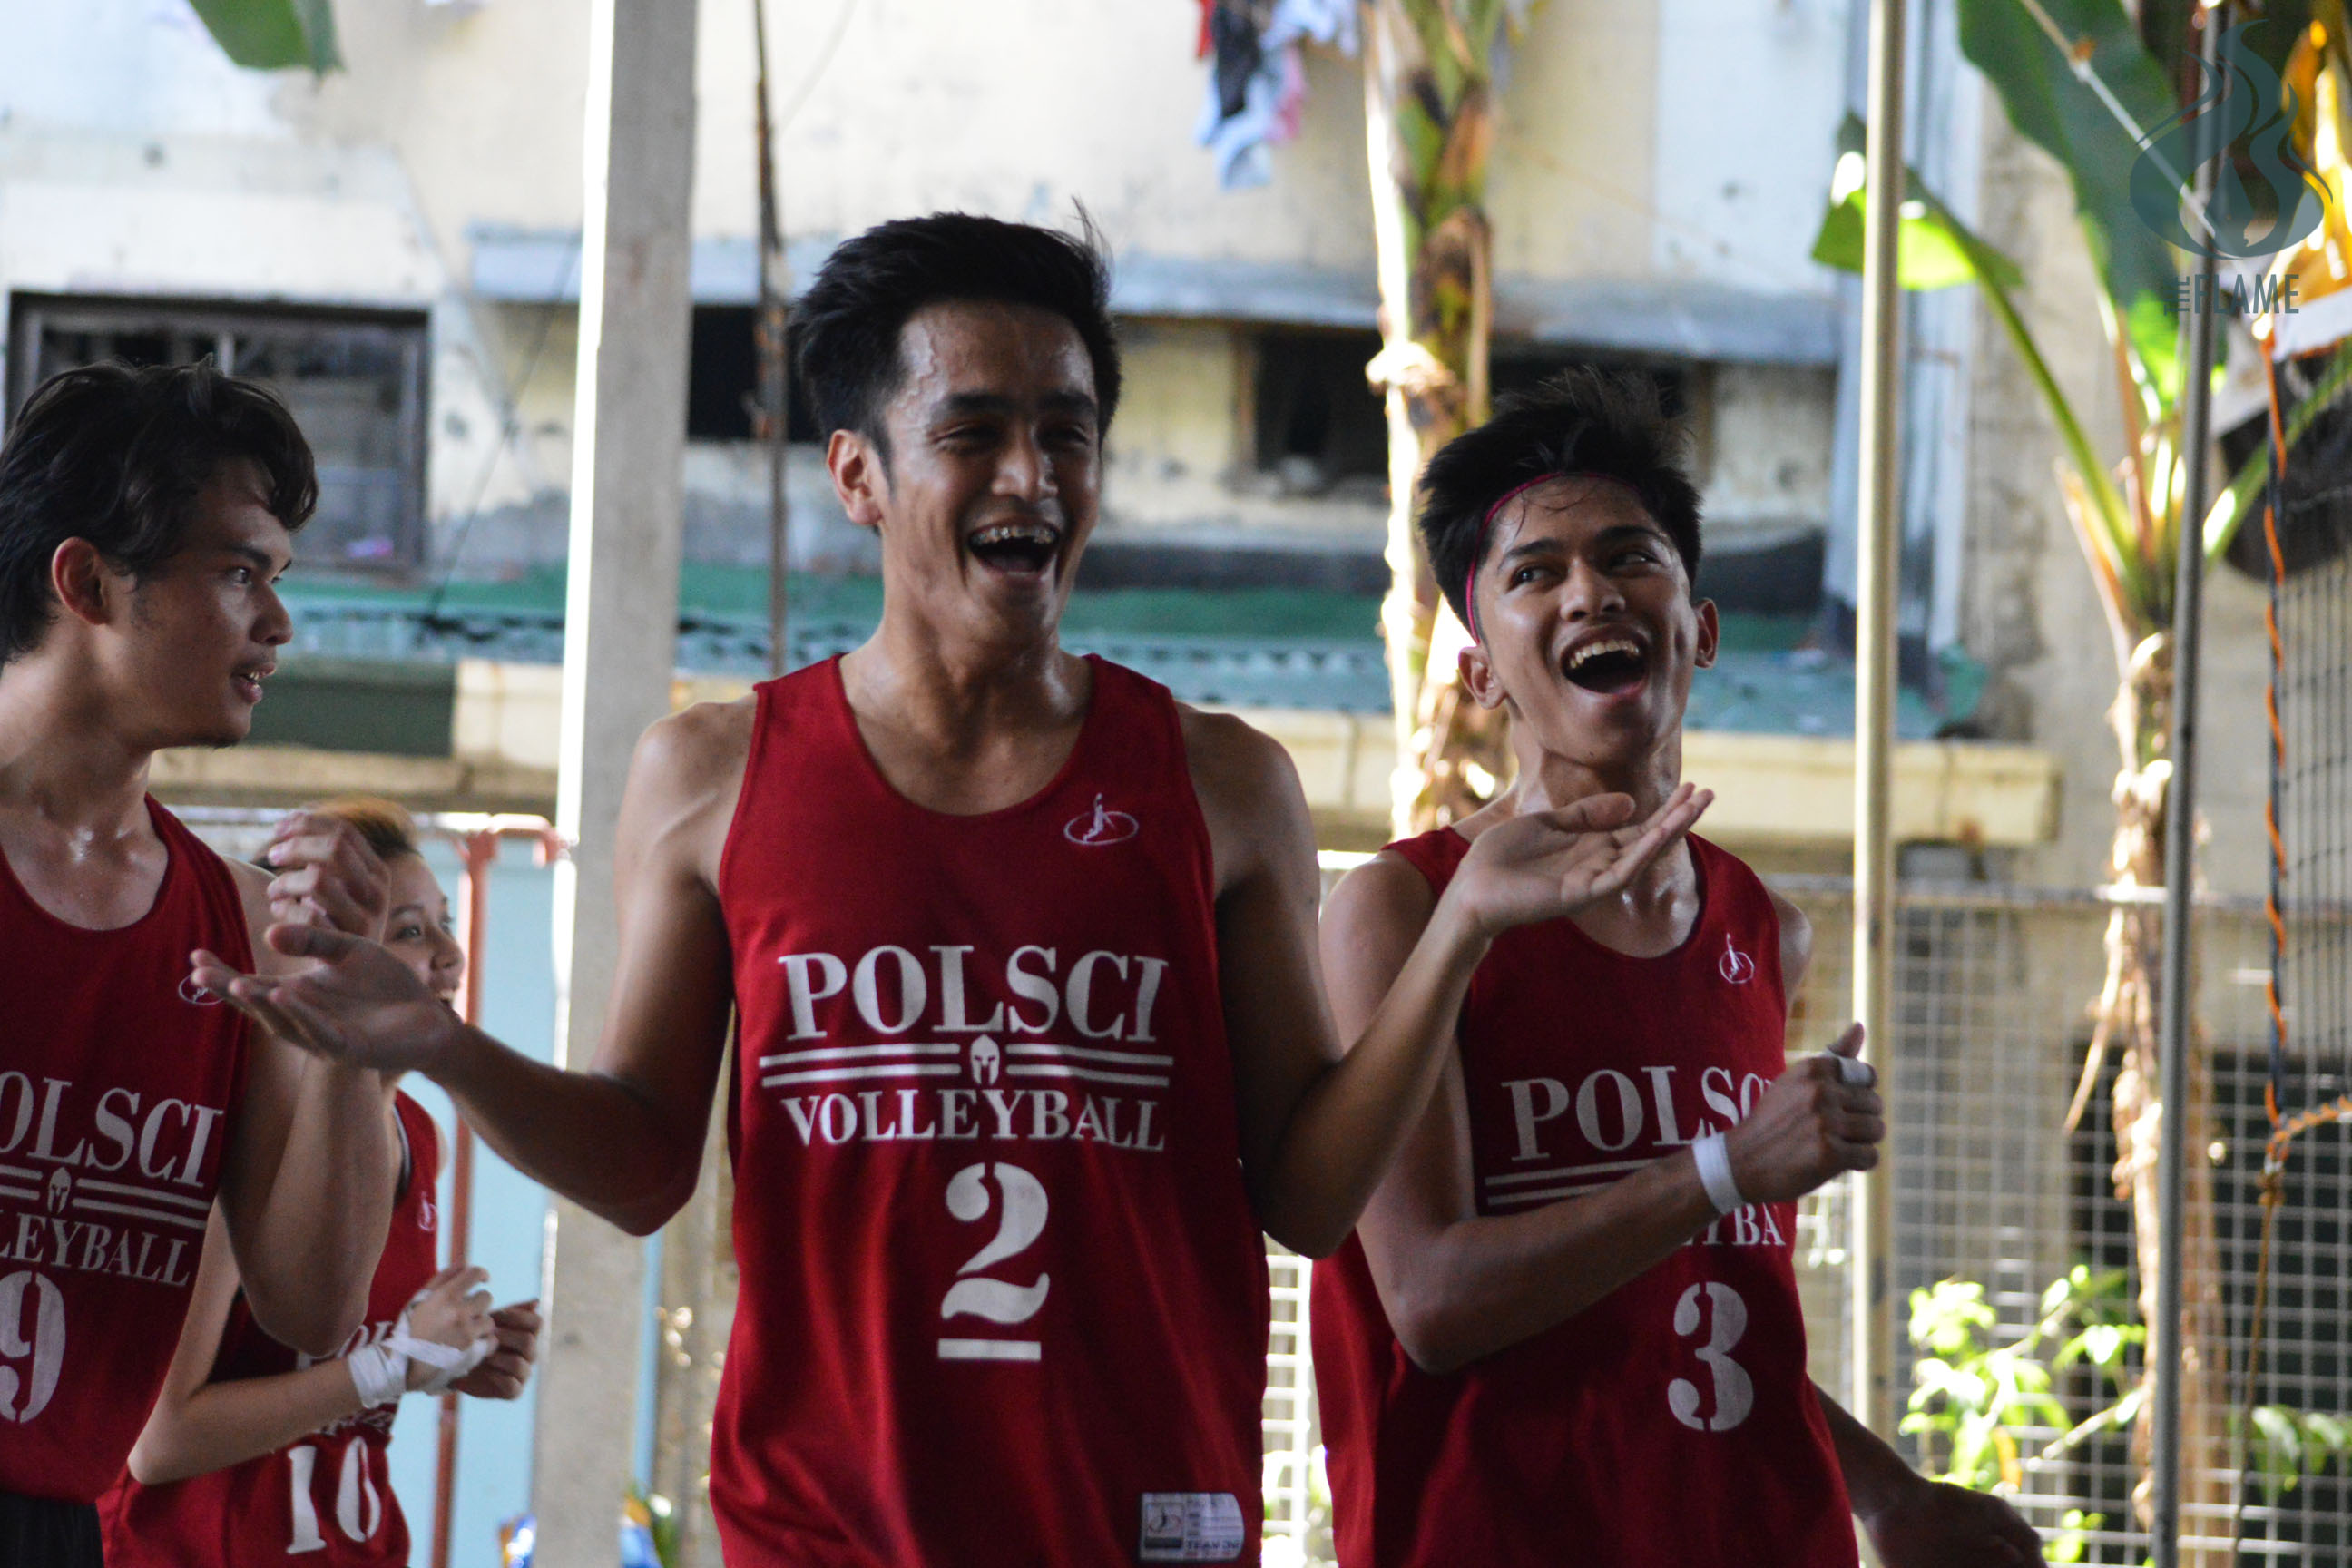 PolSci eyes back-to-back volleyball titles, set to face BES